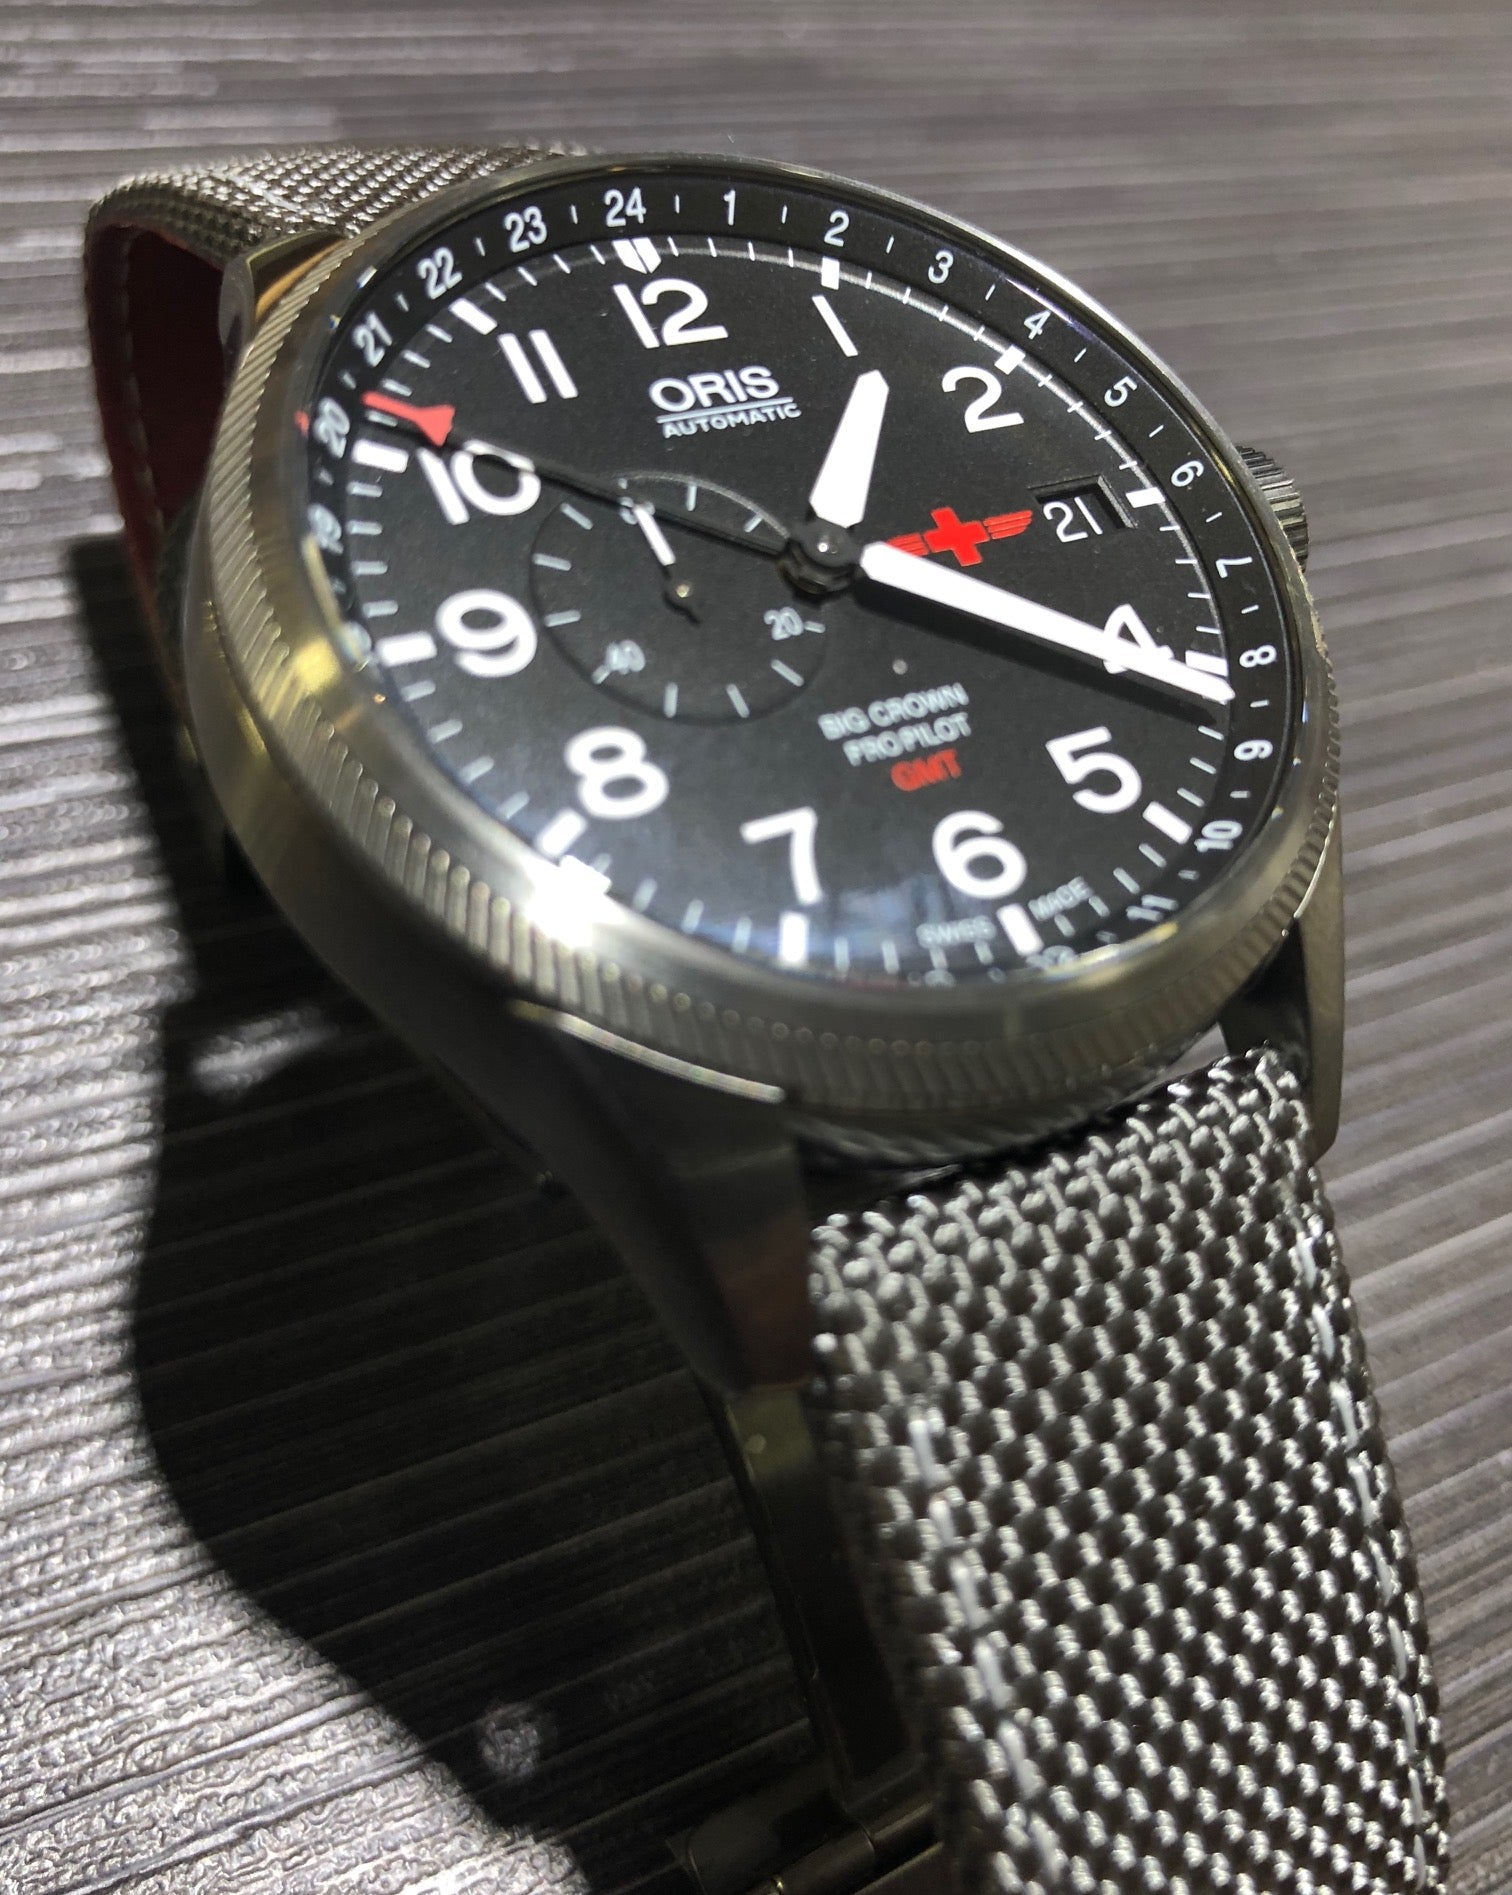 Oris Helps Save Lives With the GMT Rega Limited Edition